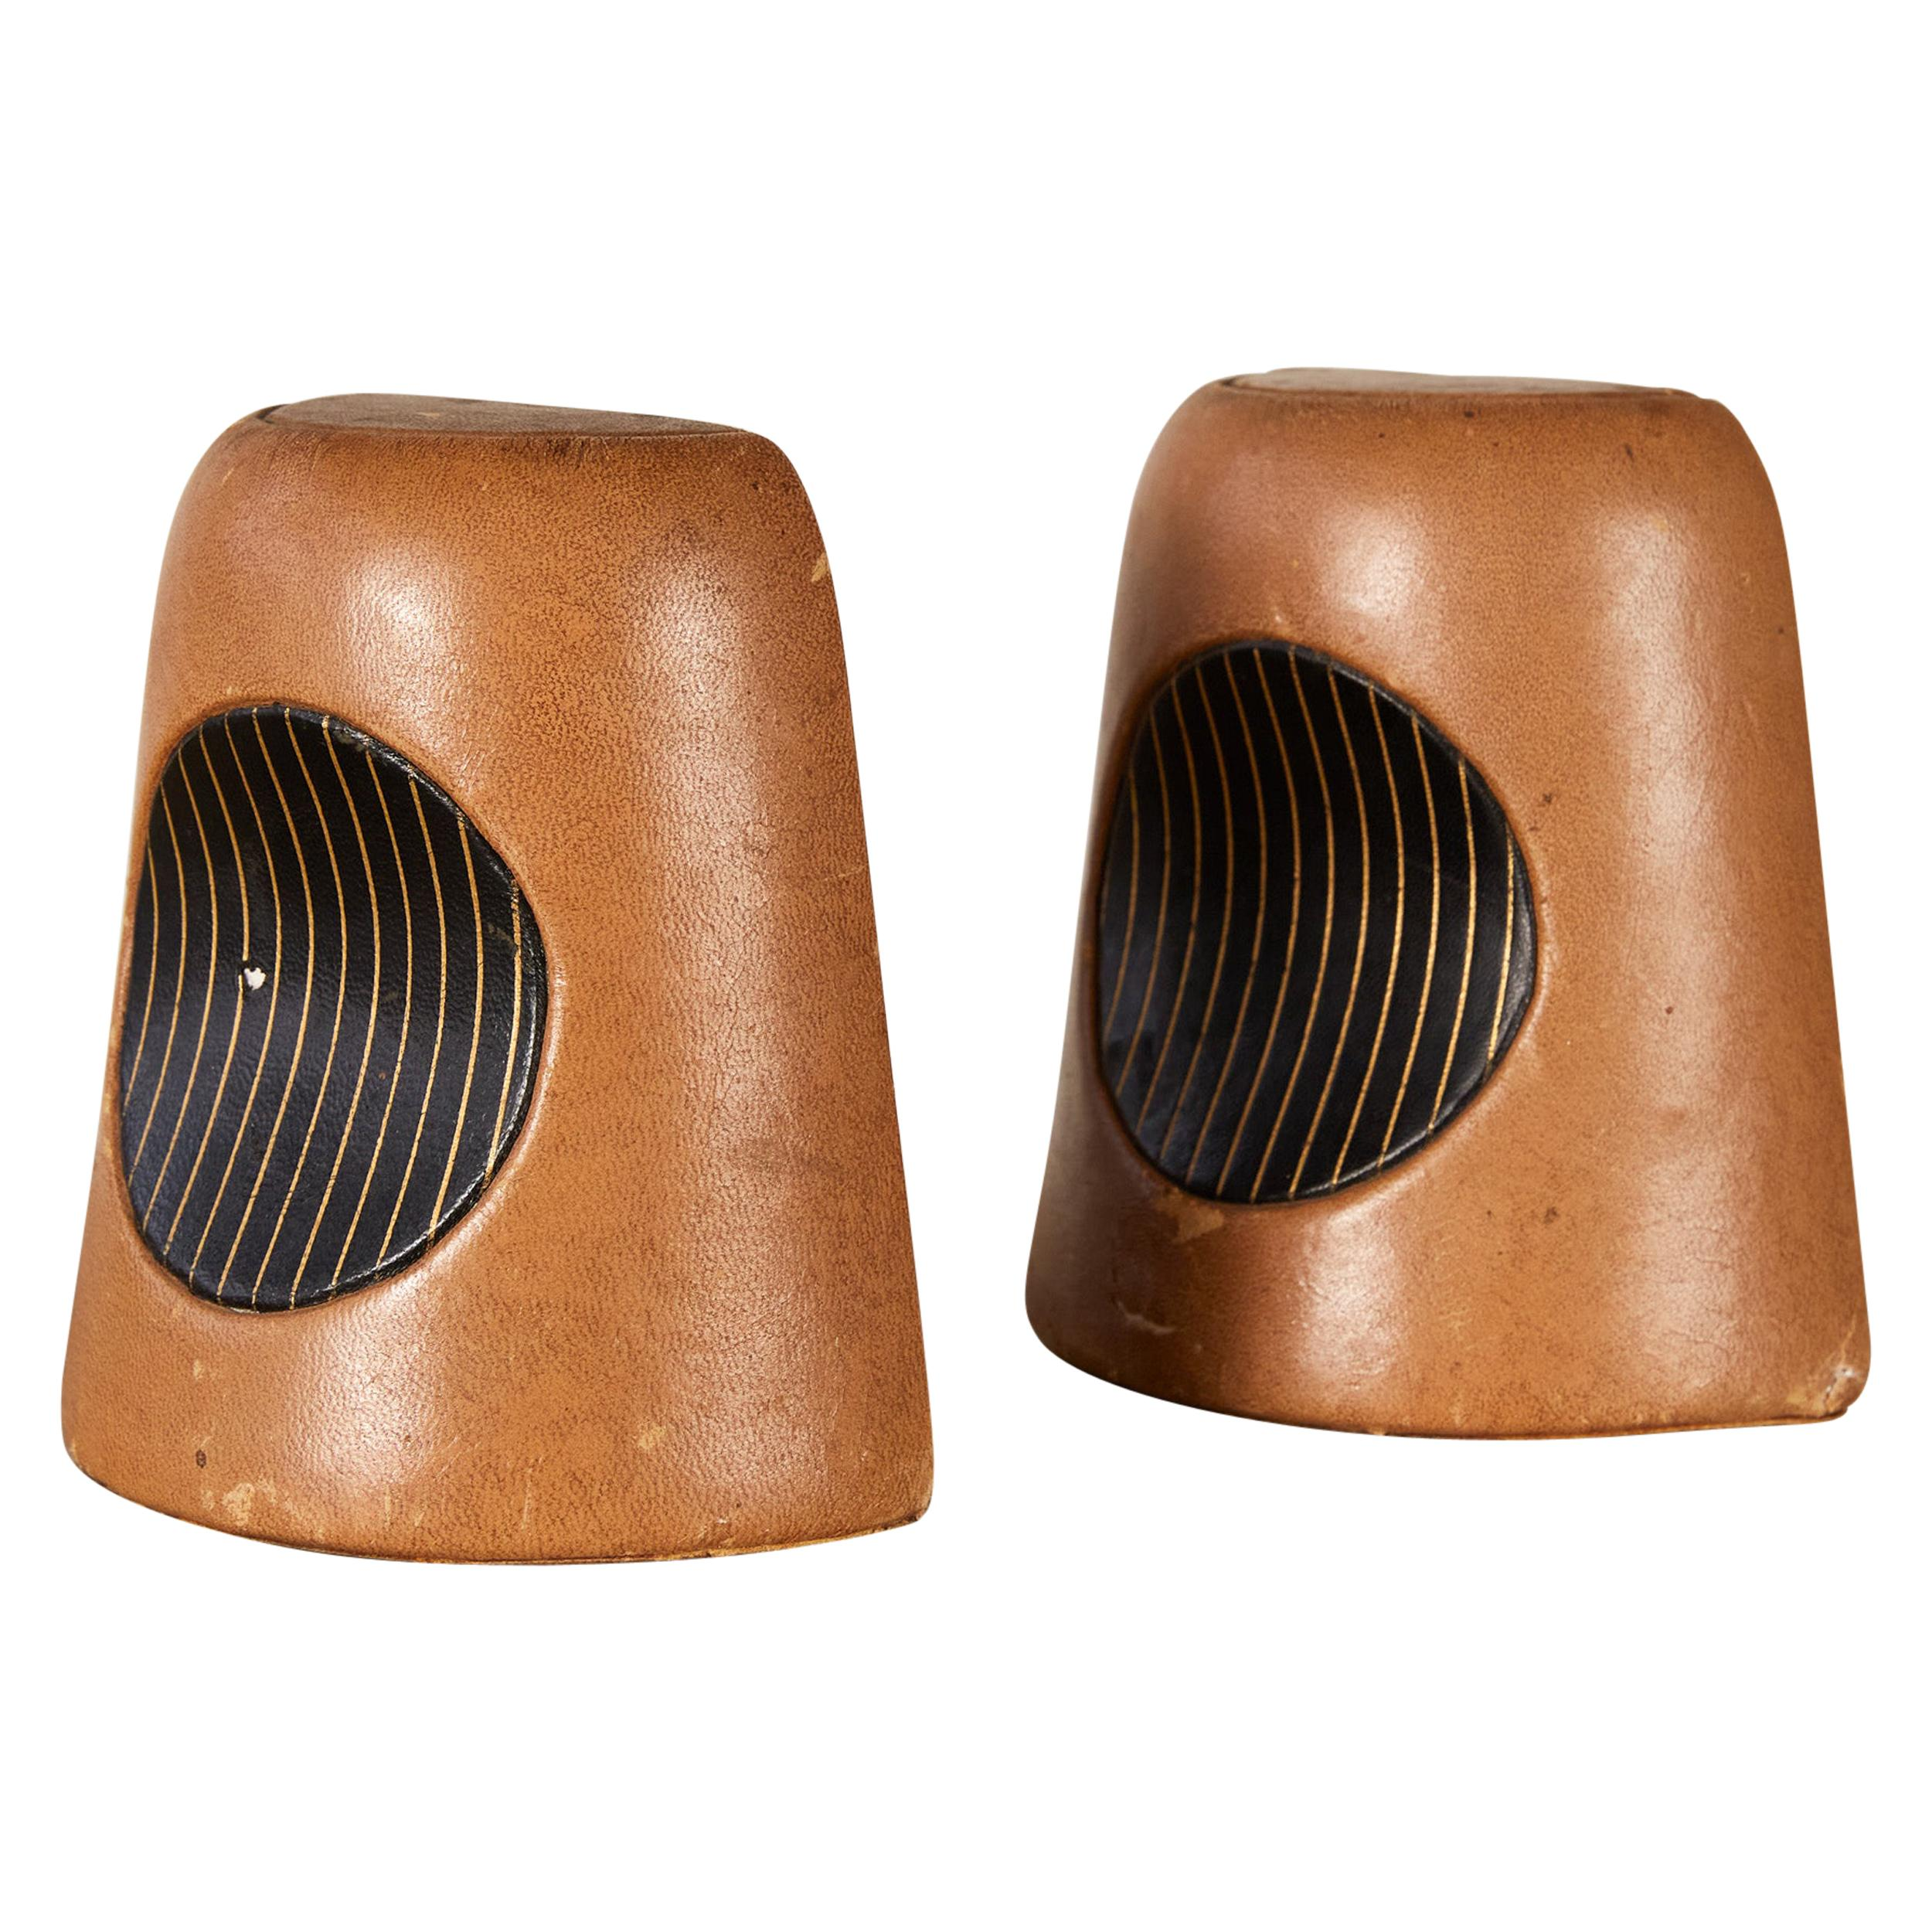 Pair of Patinated Leather Bookends